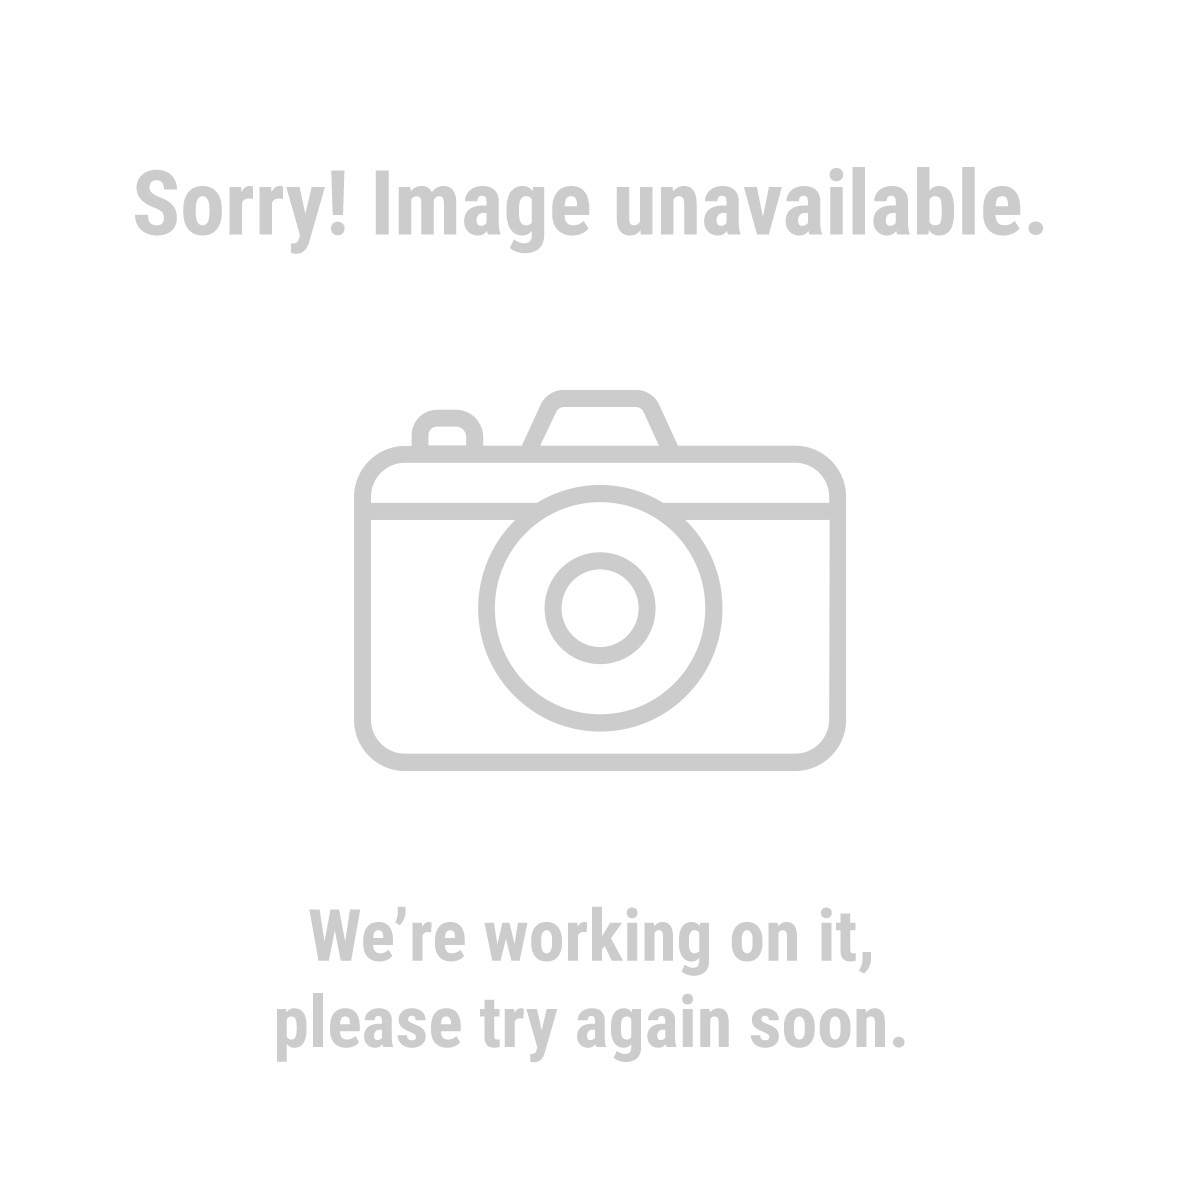 94635 4 Piece Anti-Fatigue Foam Mat Set